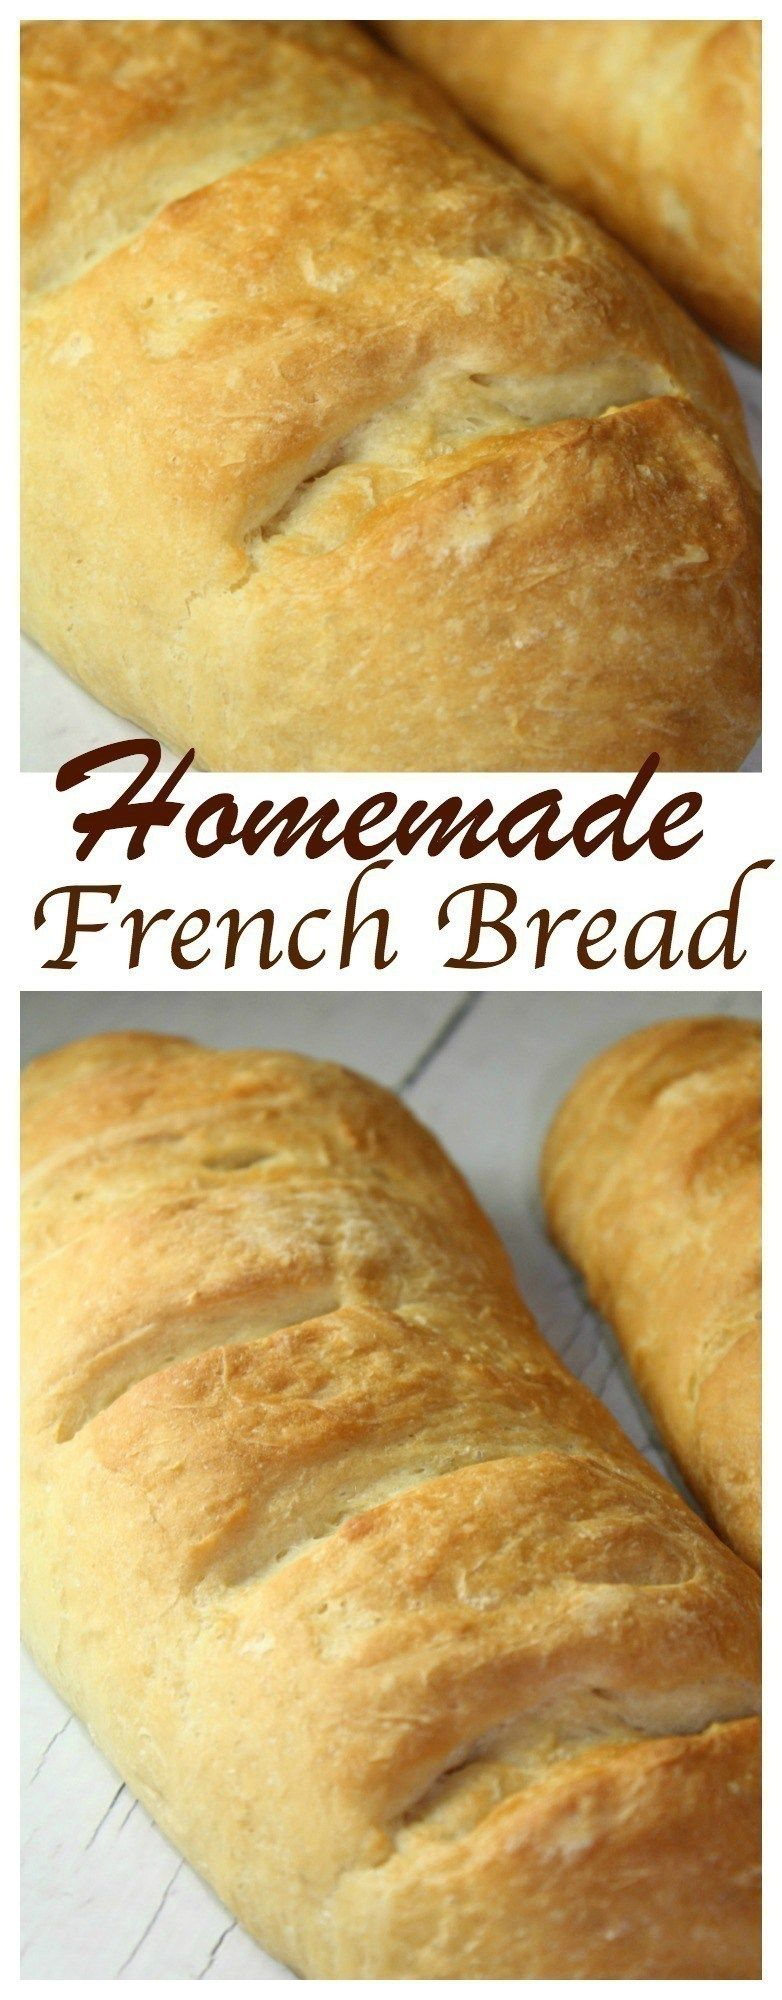 Easy Homemade French Bread | Homemade french bread, French ...